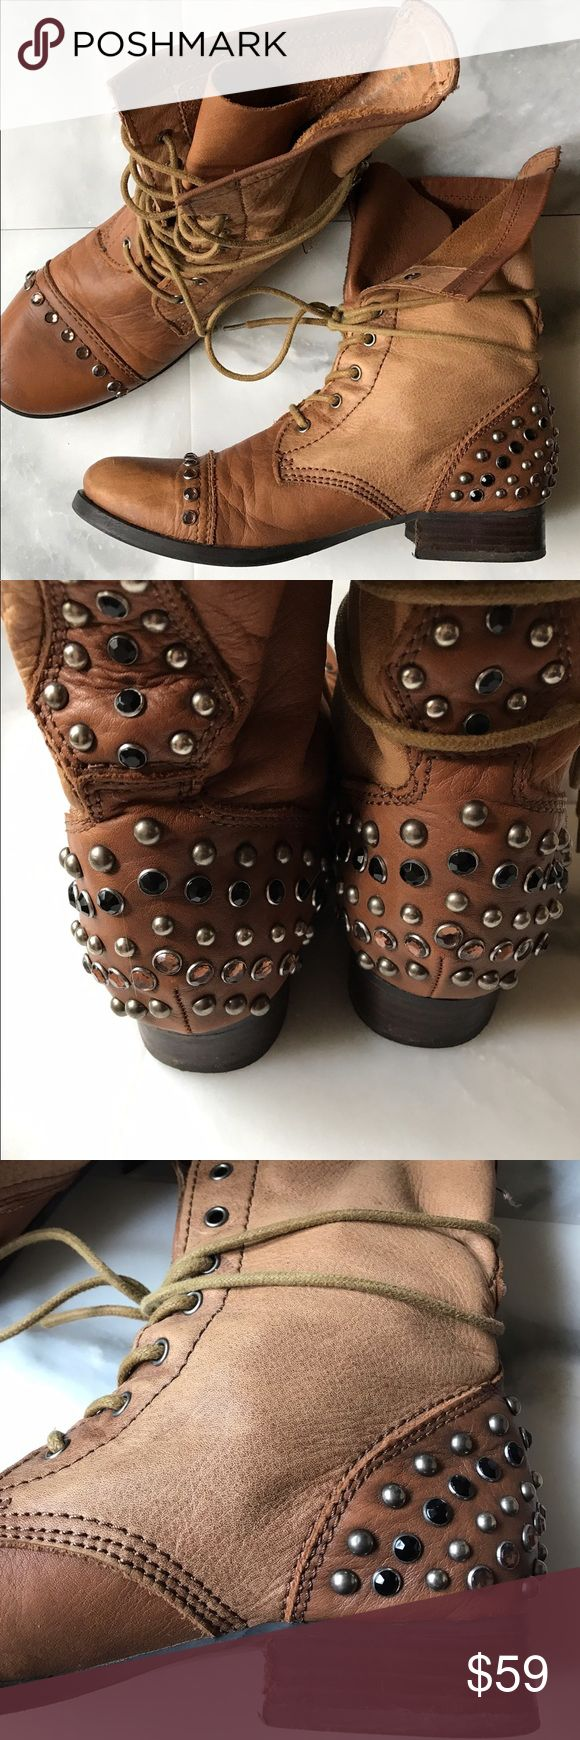 Aldo Studded Leather Motorcycle Boots Size 9 I adore these boots! Really pretty studded detail across the heel and on the toe. Soft distressed tan leather. Broken in perfectly. Great condition. Minor wear on toe and heel (looks intentional due to the distressed look!) Aldo Shoes Combat & Moto Boots